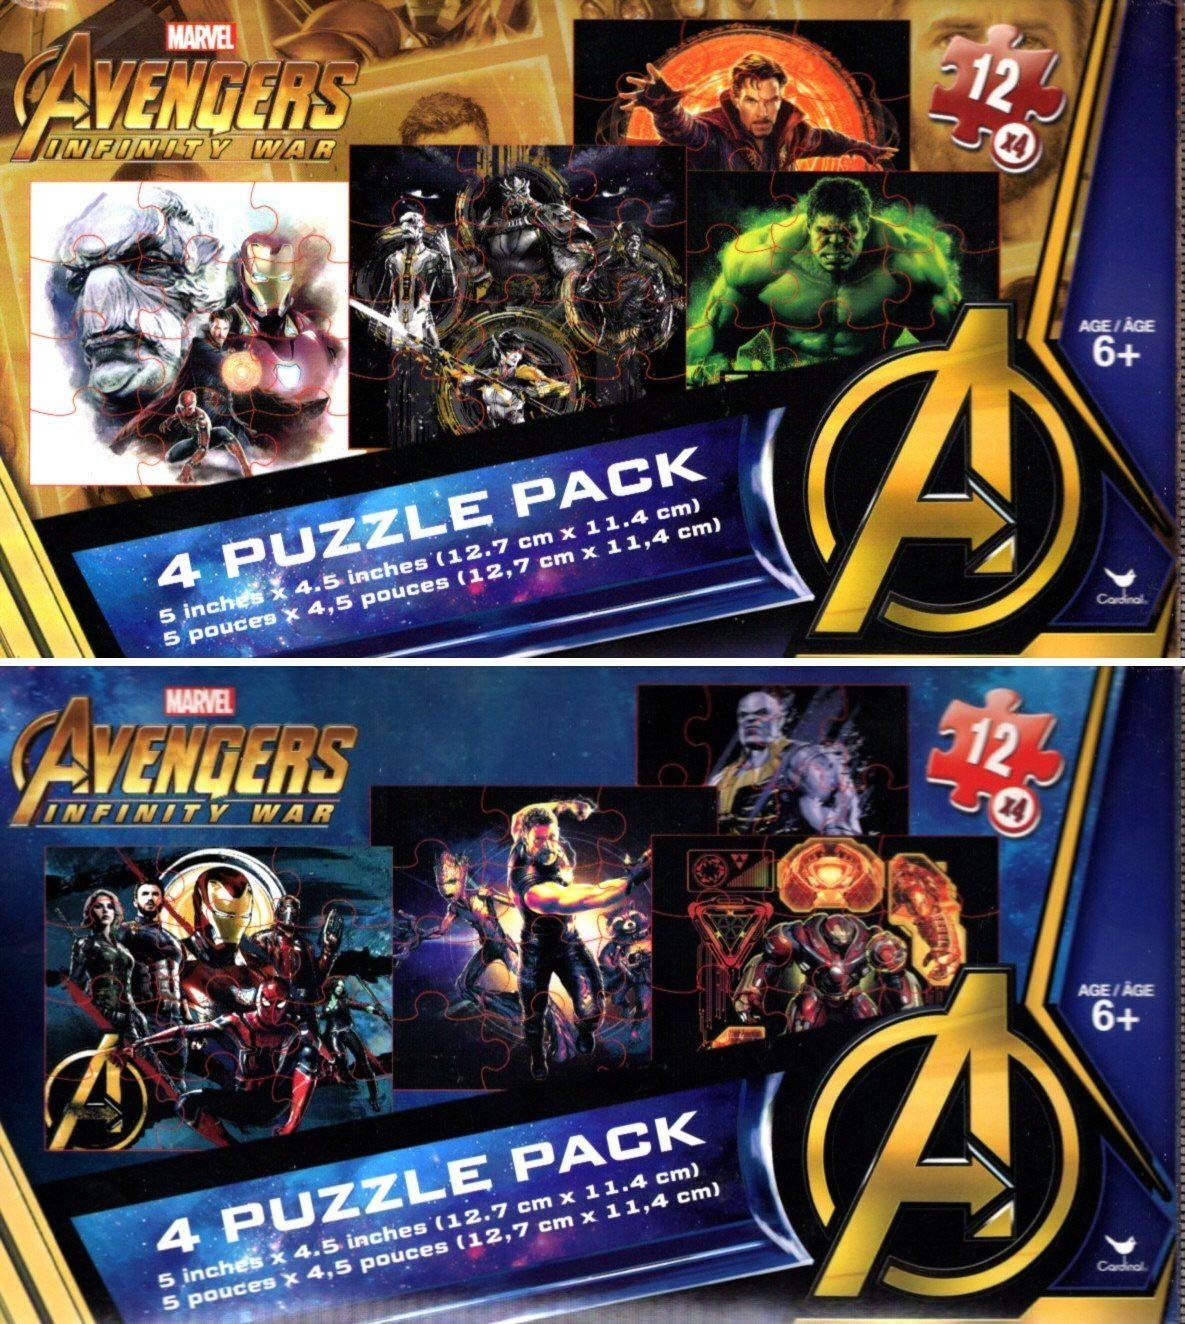 Marvel Avengers Infinity War - 4 Puzzle Pack - 12 Piece Jigsaw Puzzle - (Bundle of 2-4 Puzzle Packs)